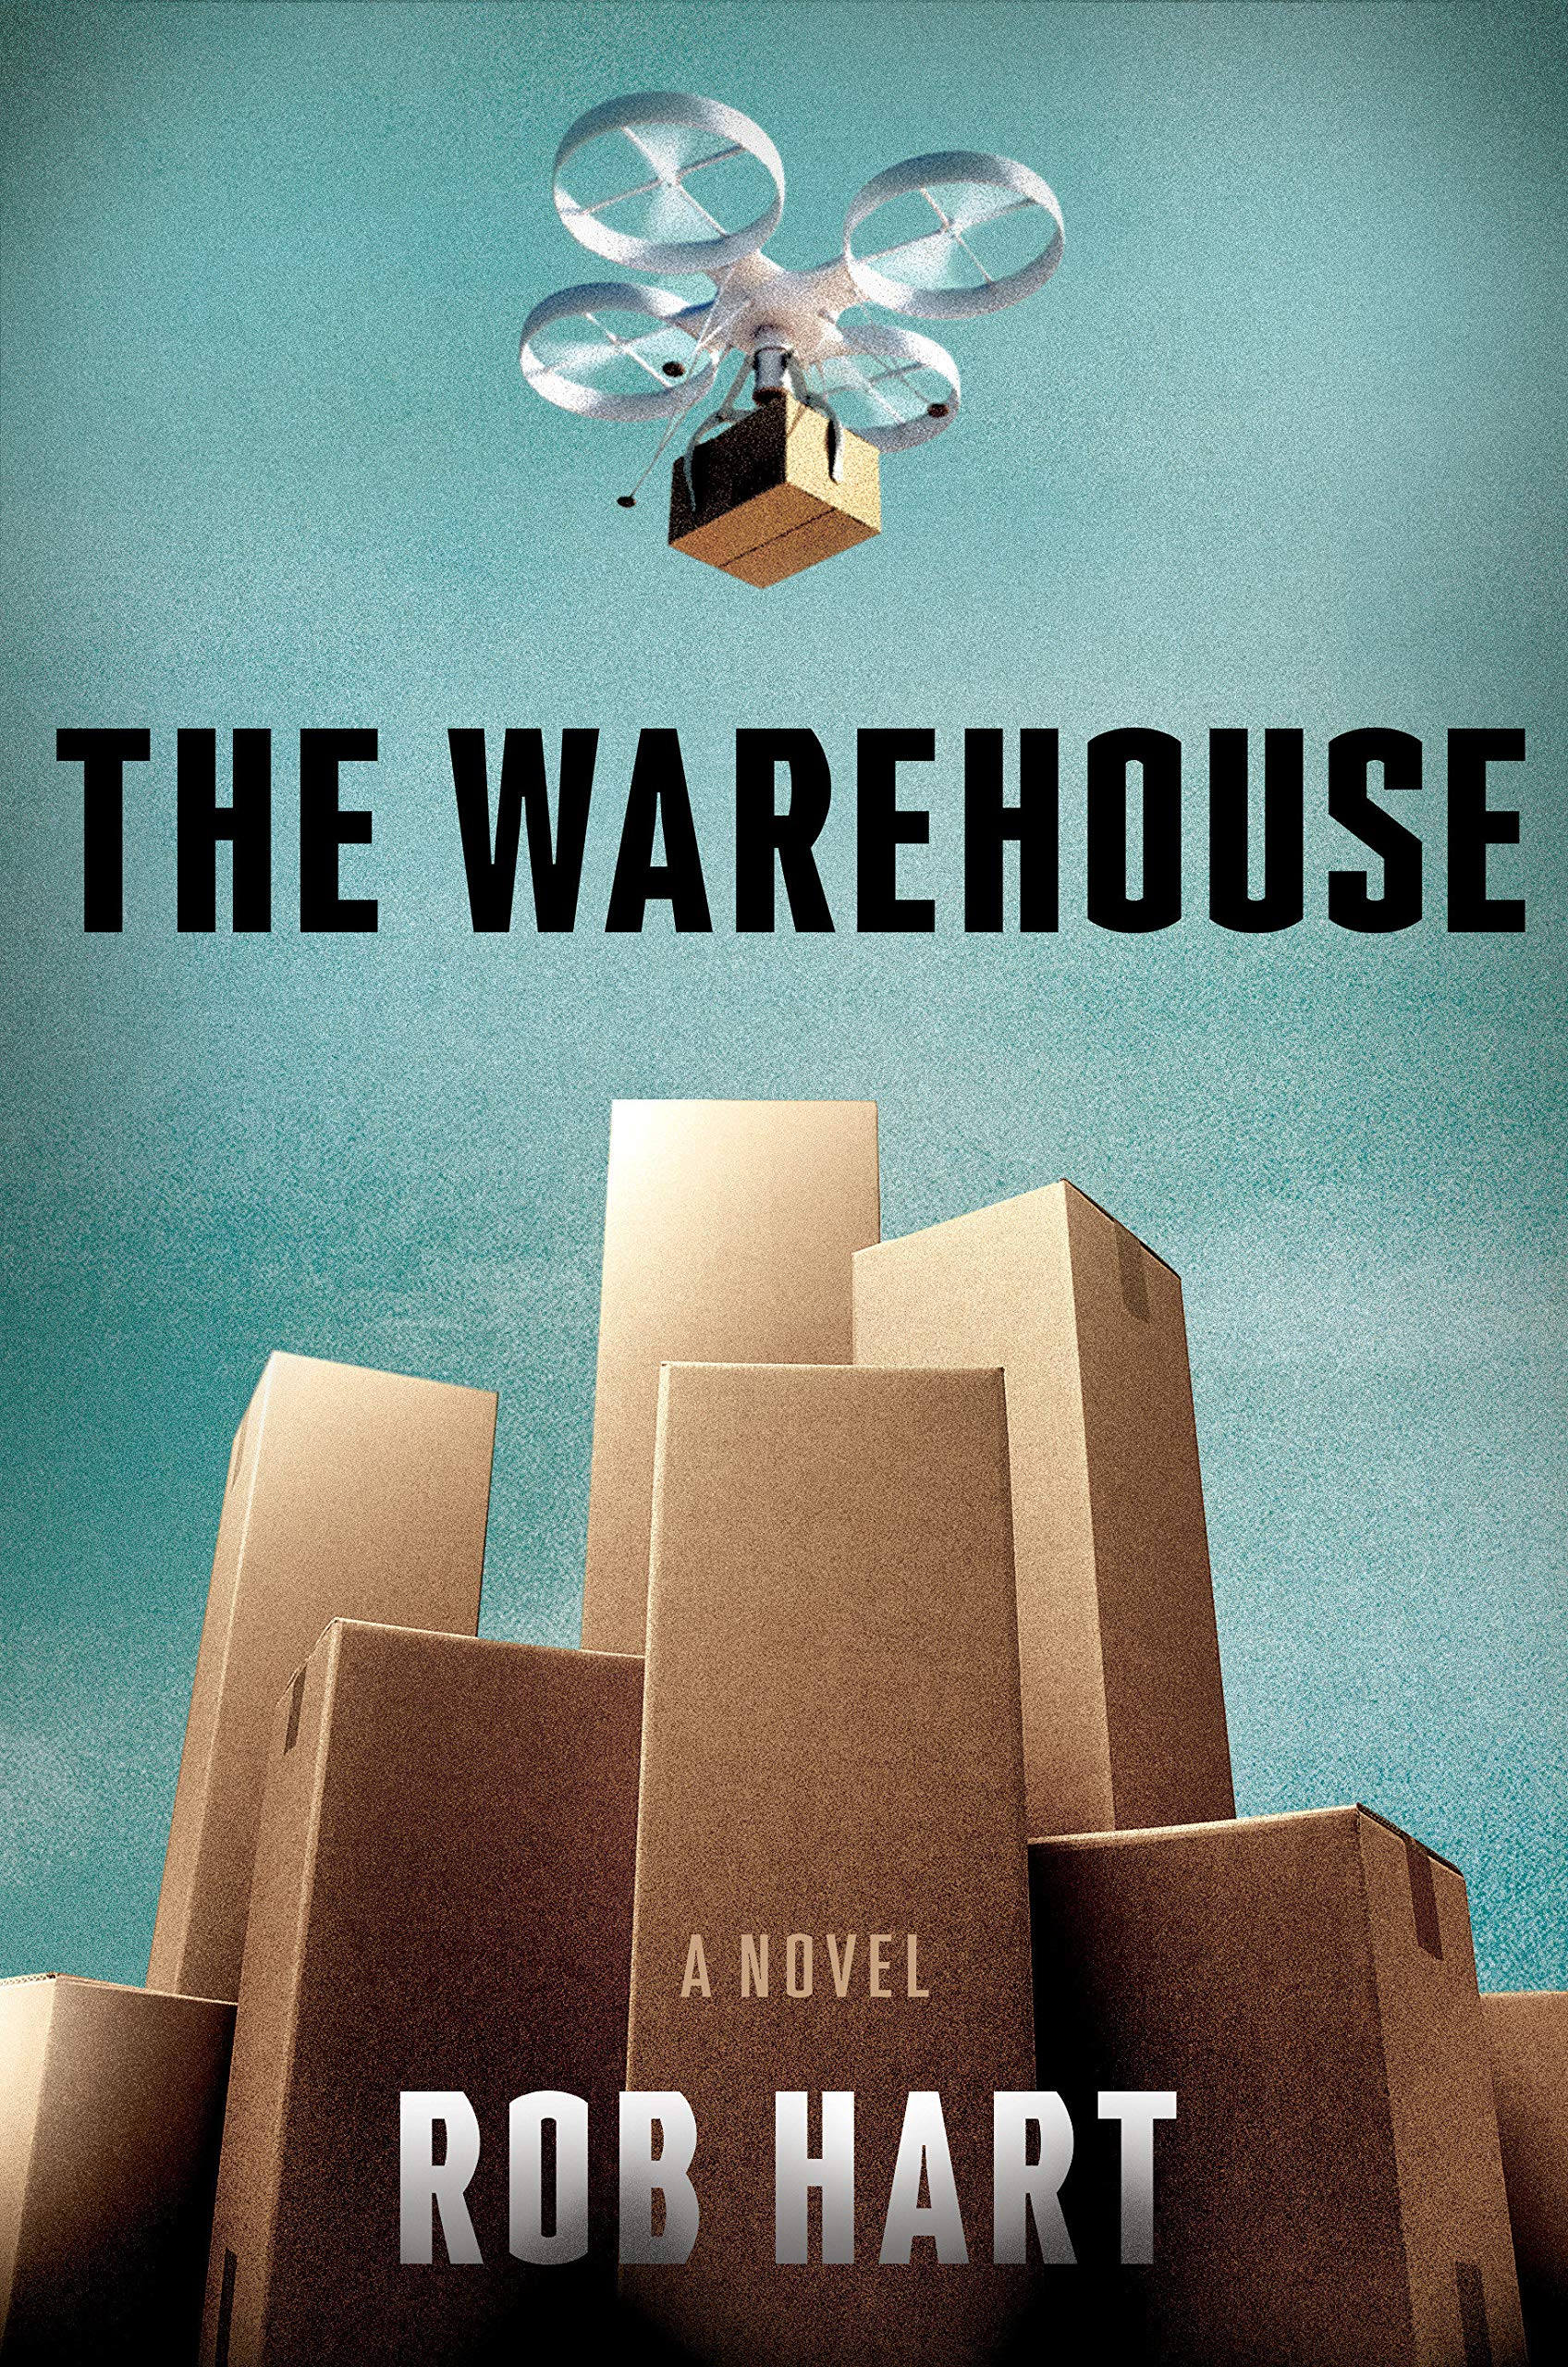 The Warehouse_Rob Hart.jpg